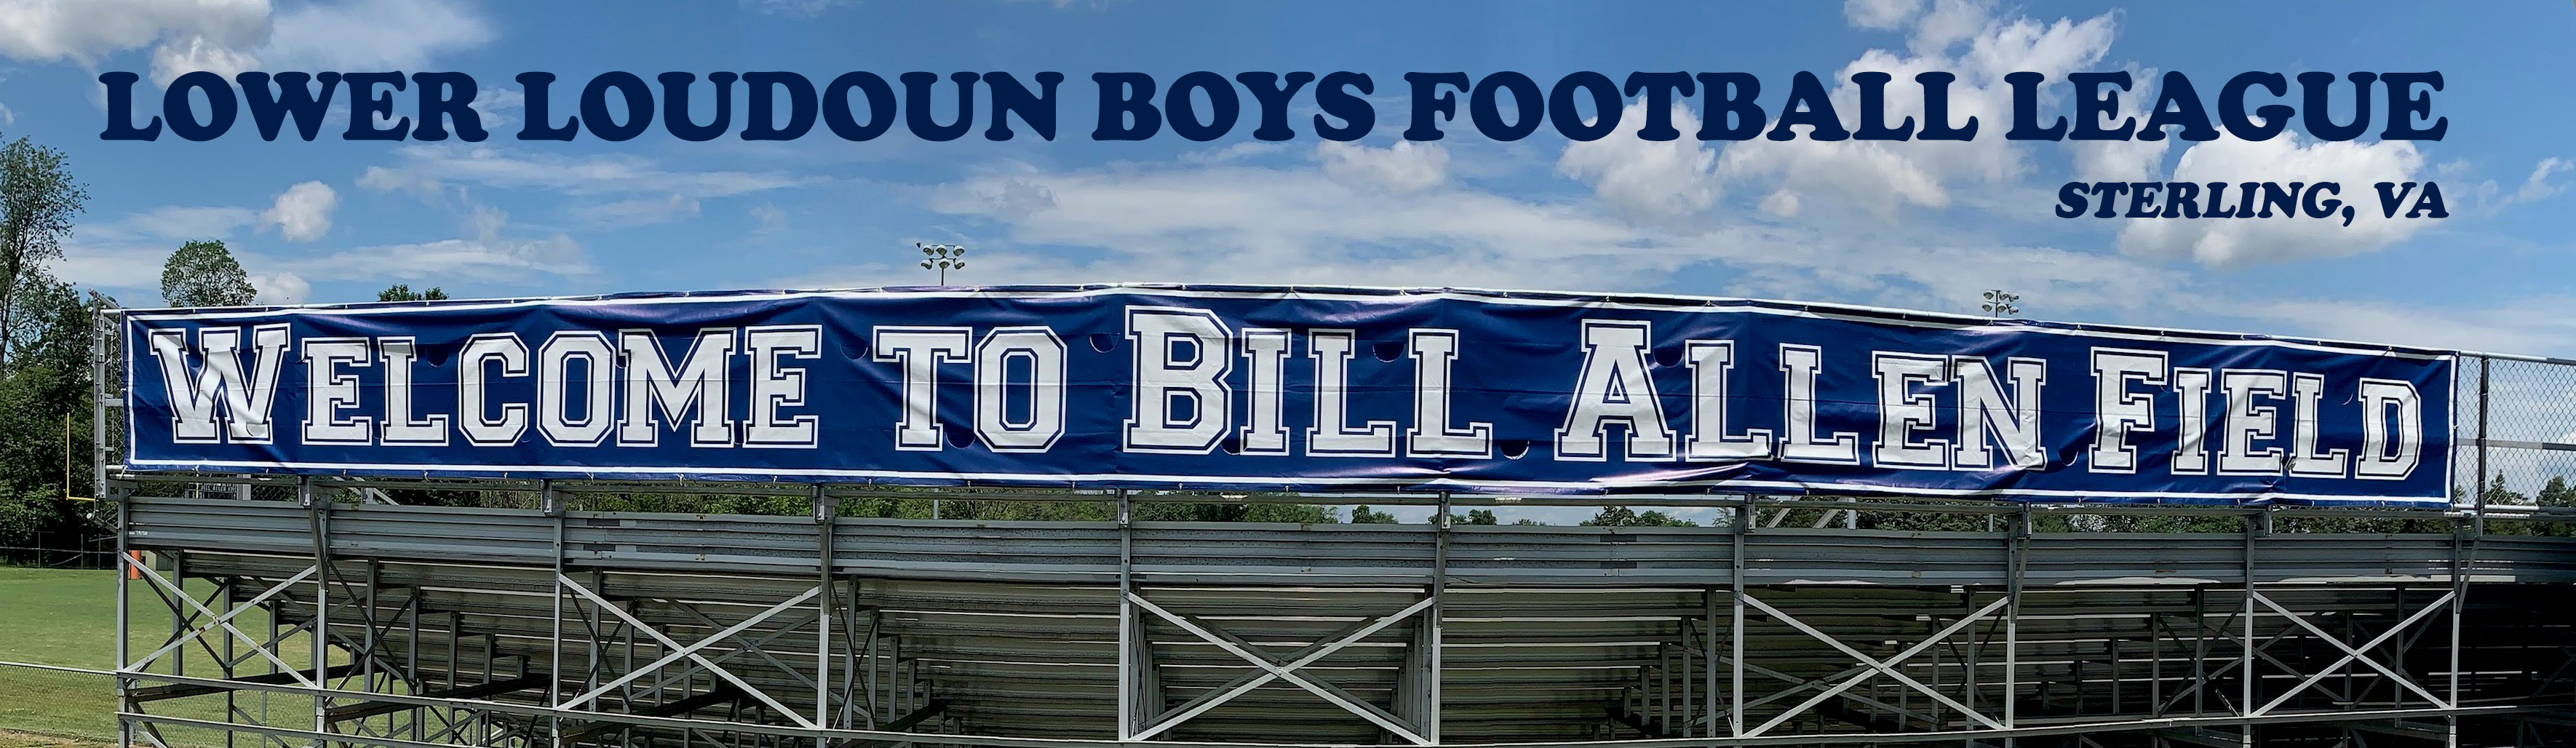 Lower Loudoun Boys Football League, Football, , Bill Allen Field